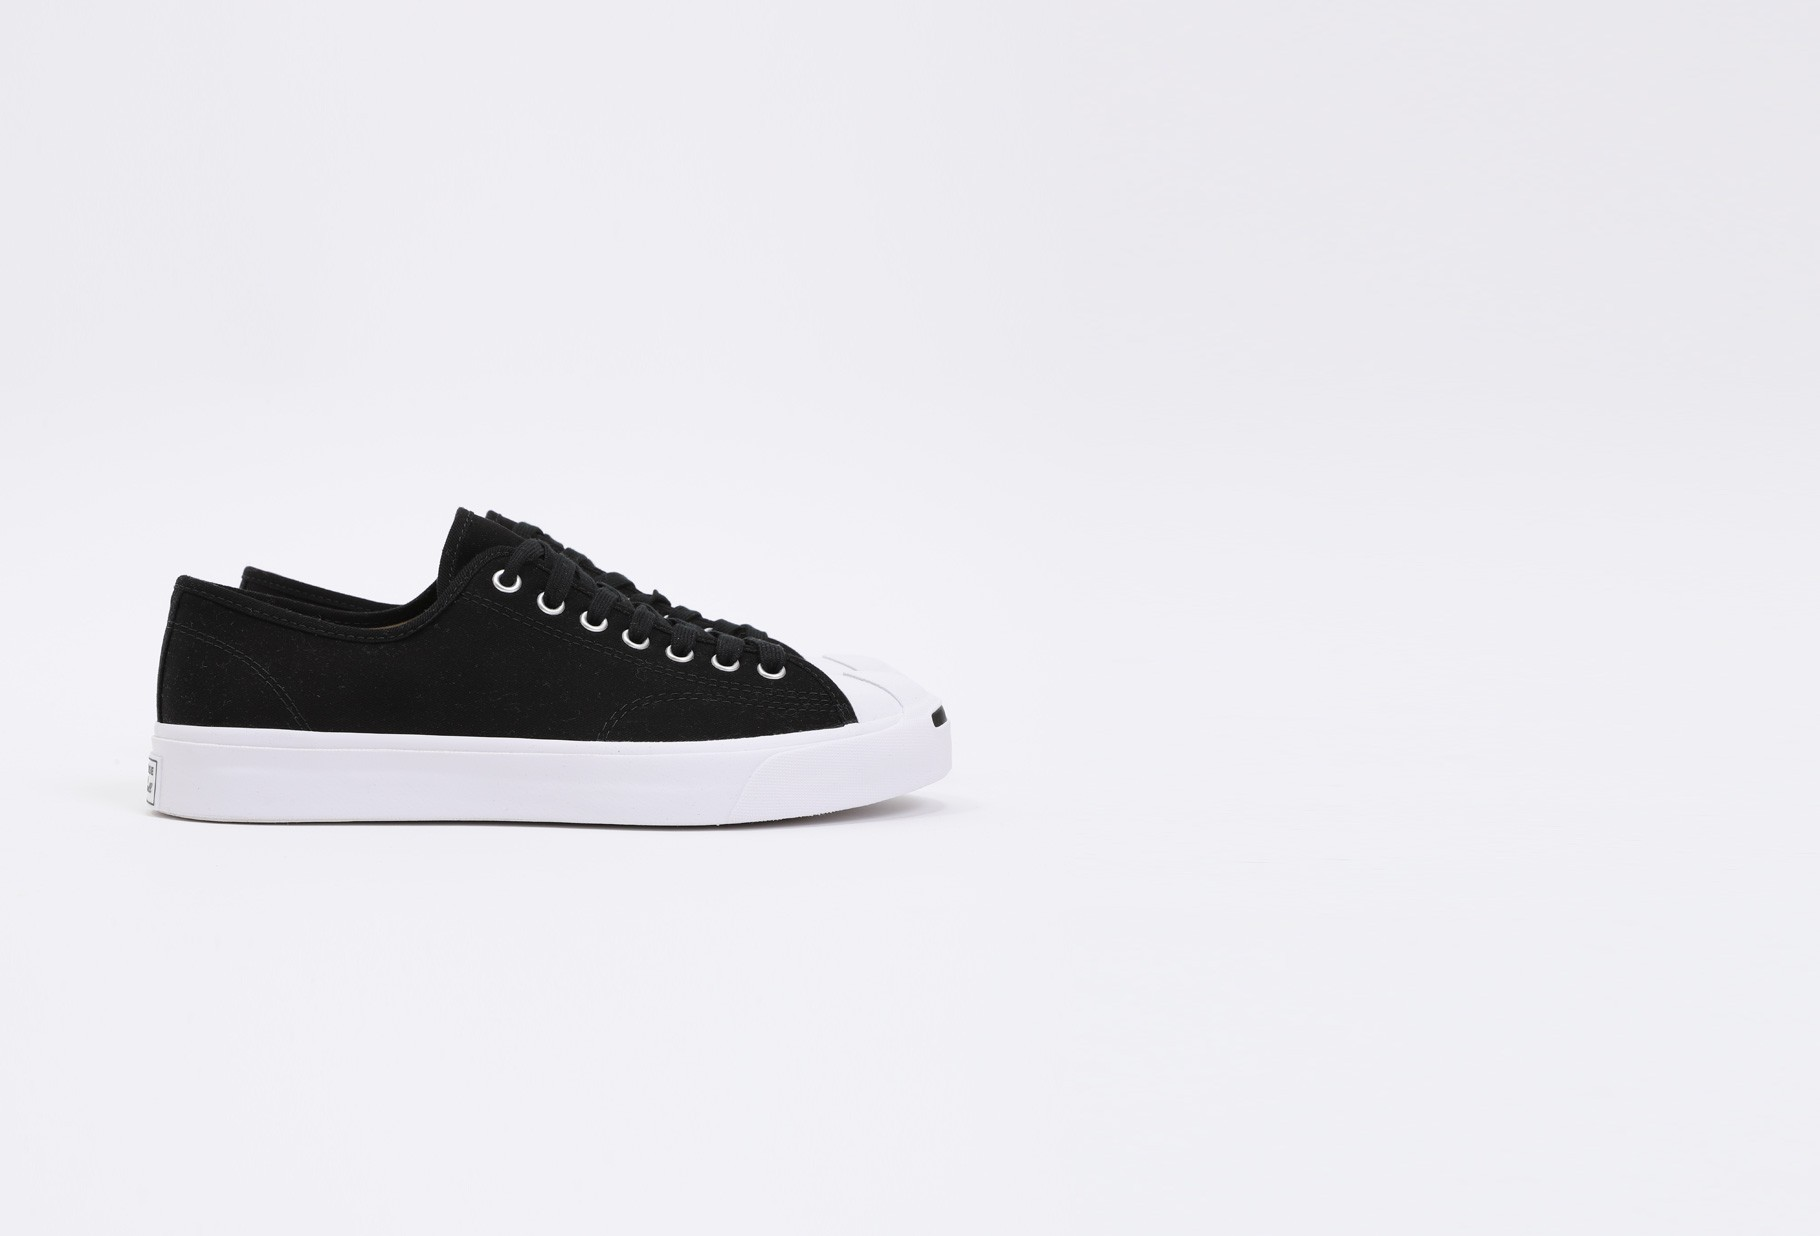 CONVERSE / Jack purcell ox Black